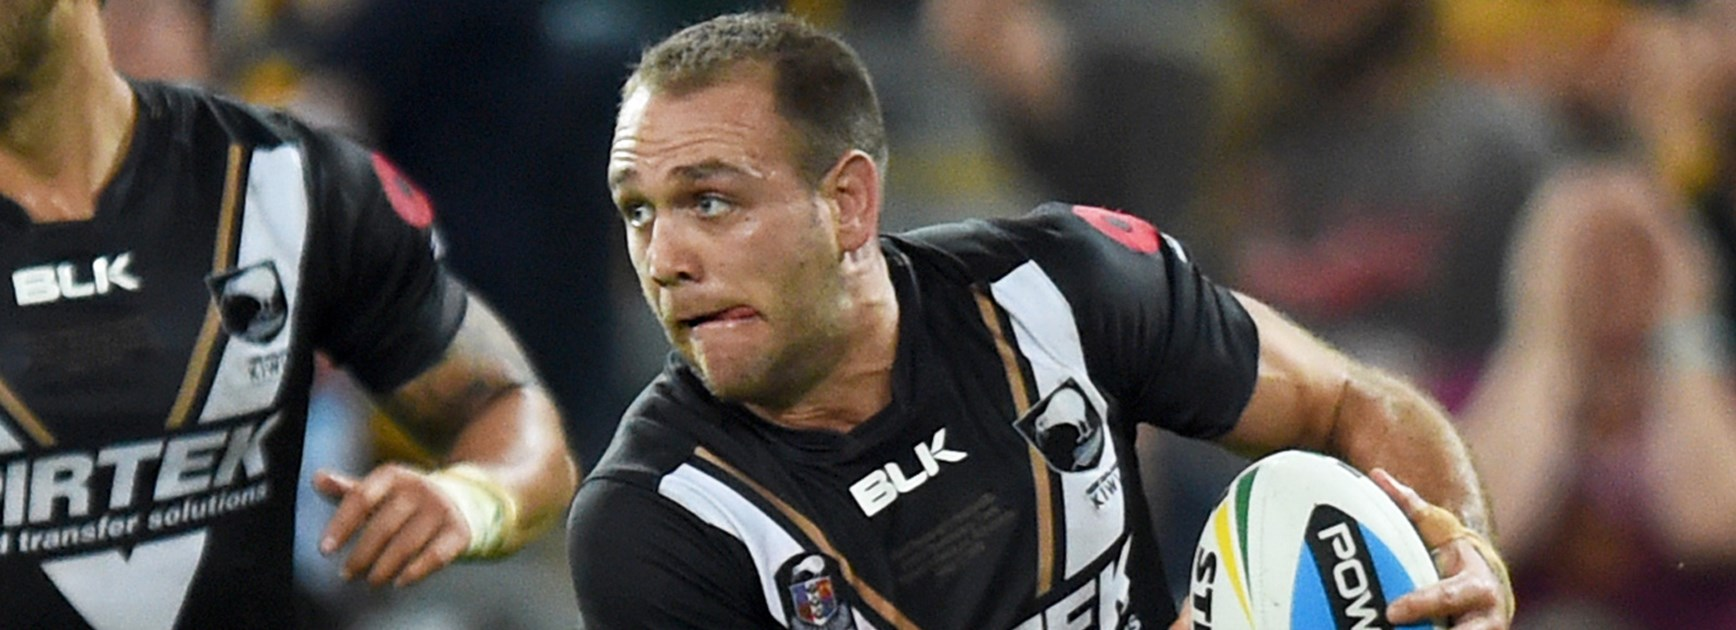 Kiwis winger Jason Nightingale says New Zealand has already shown they can win without some of their best players.